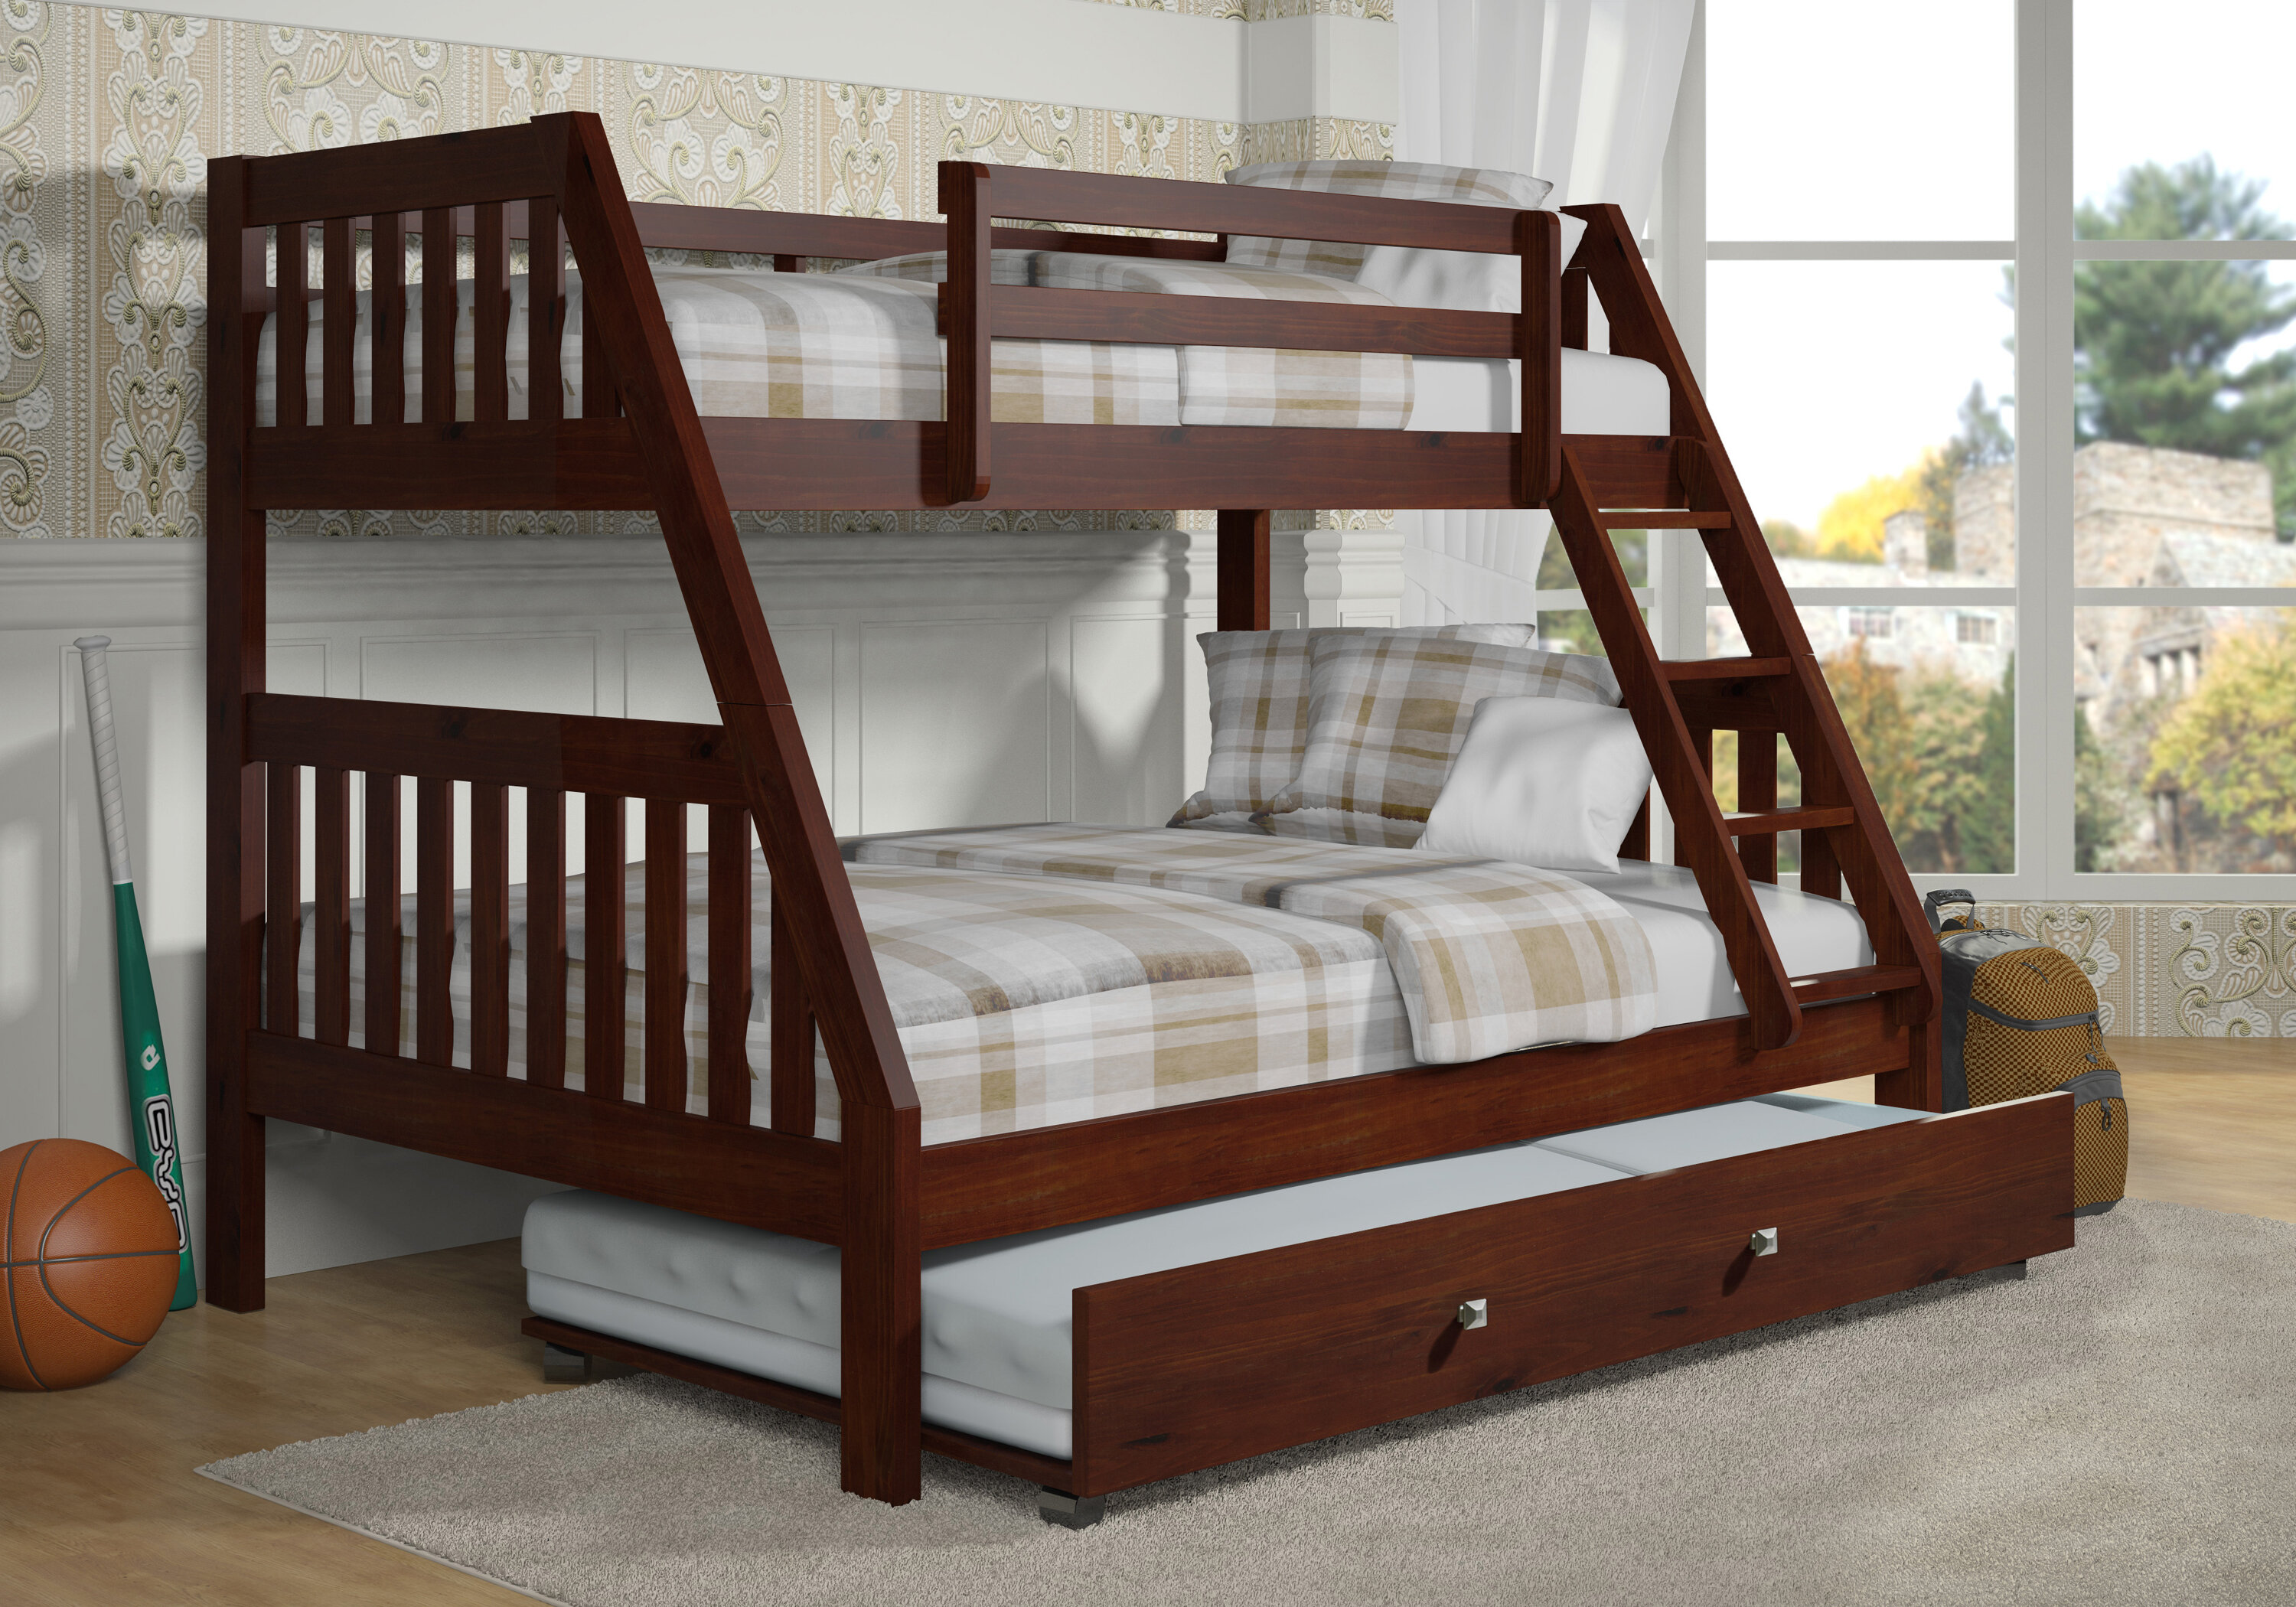 Harriet Bee Chancey Twin Over Full Bunk Bed With Trundle Reviews